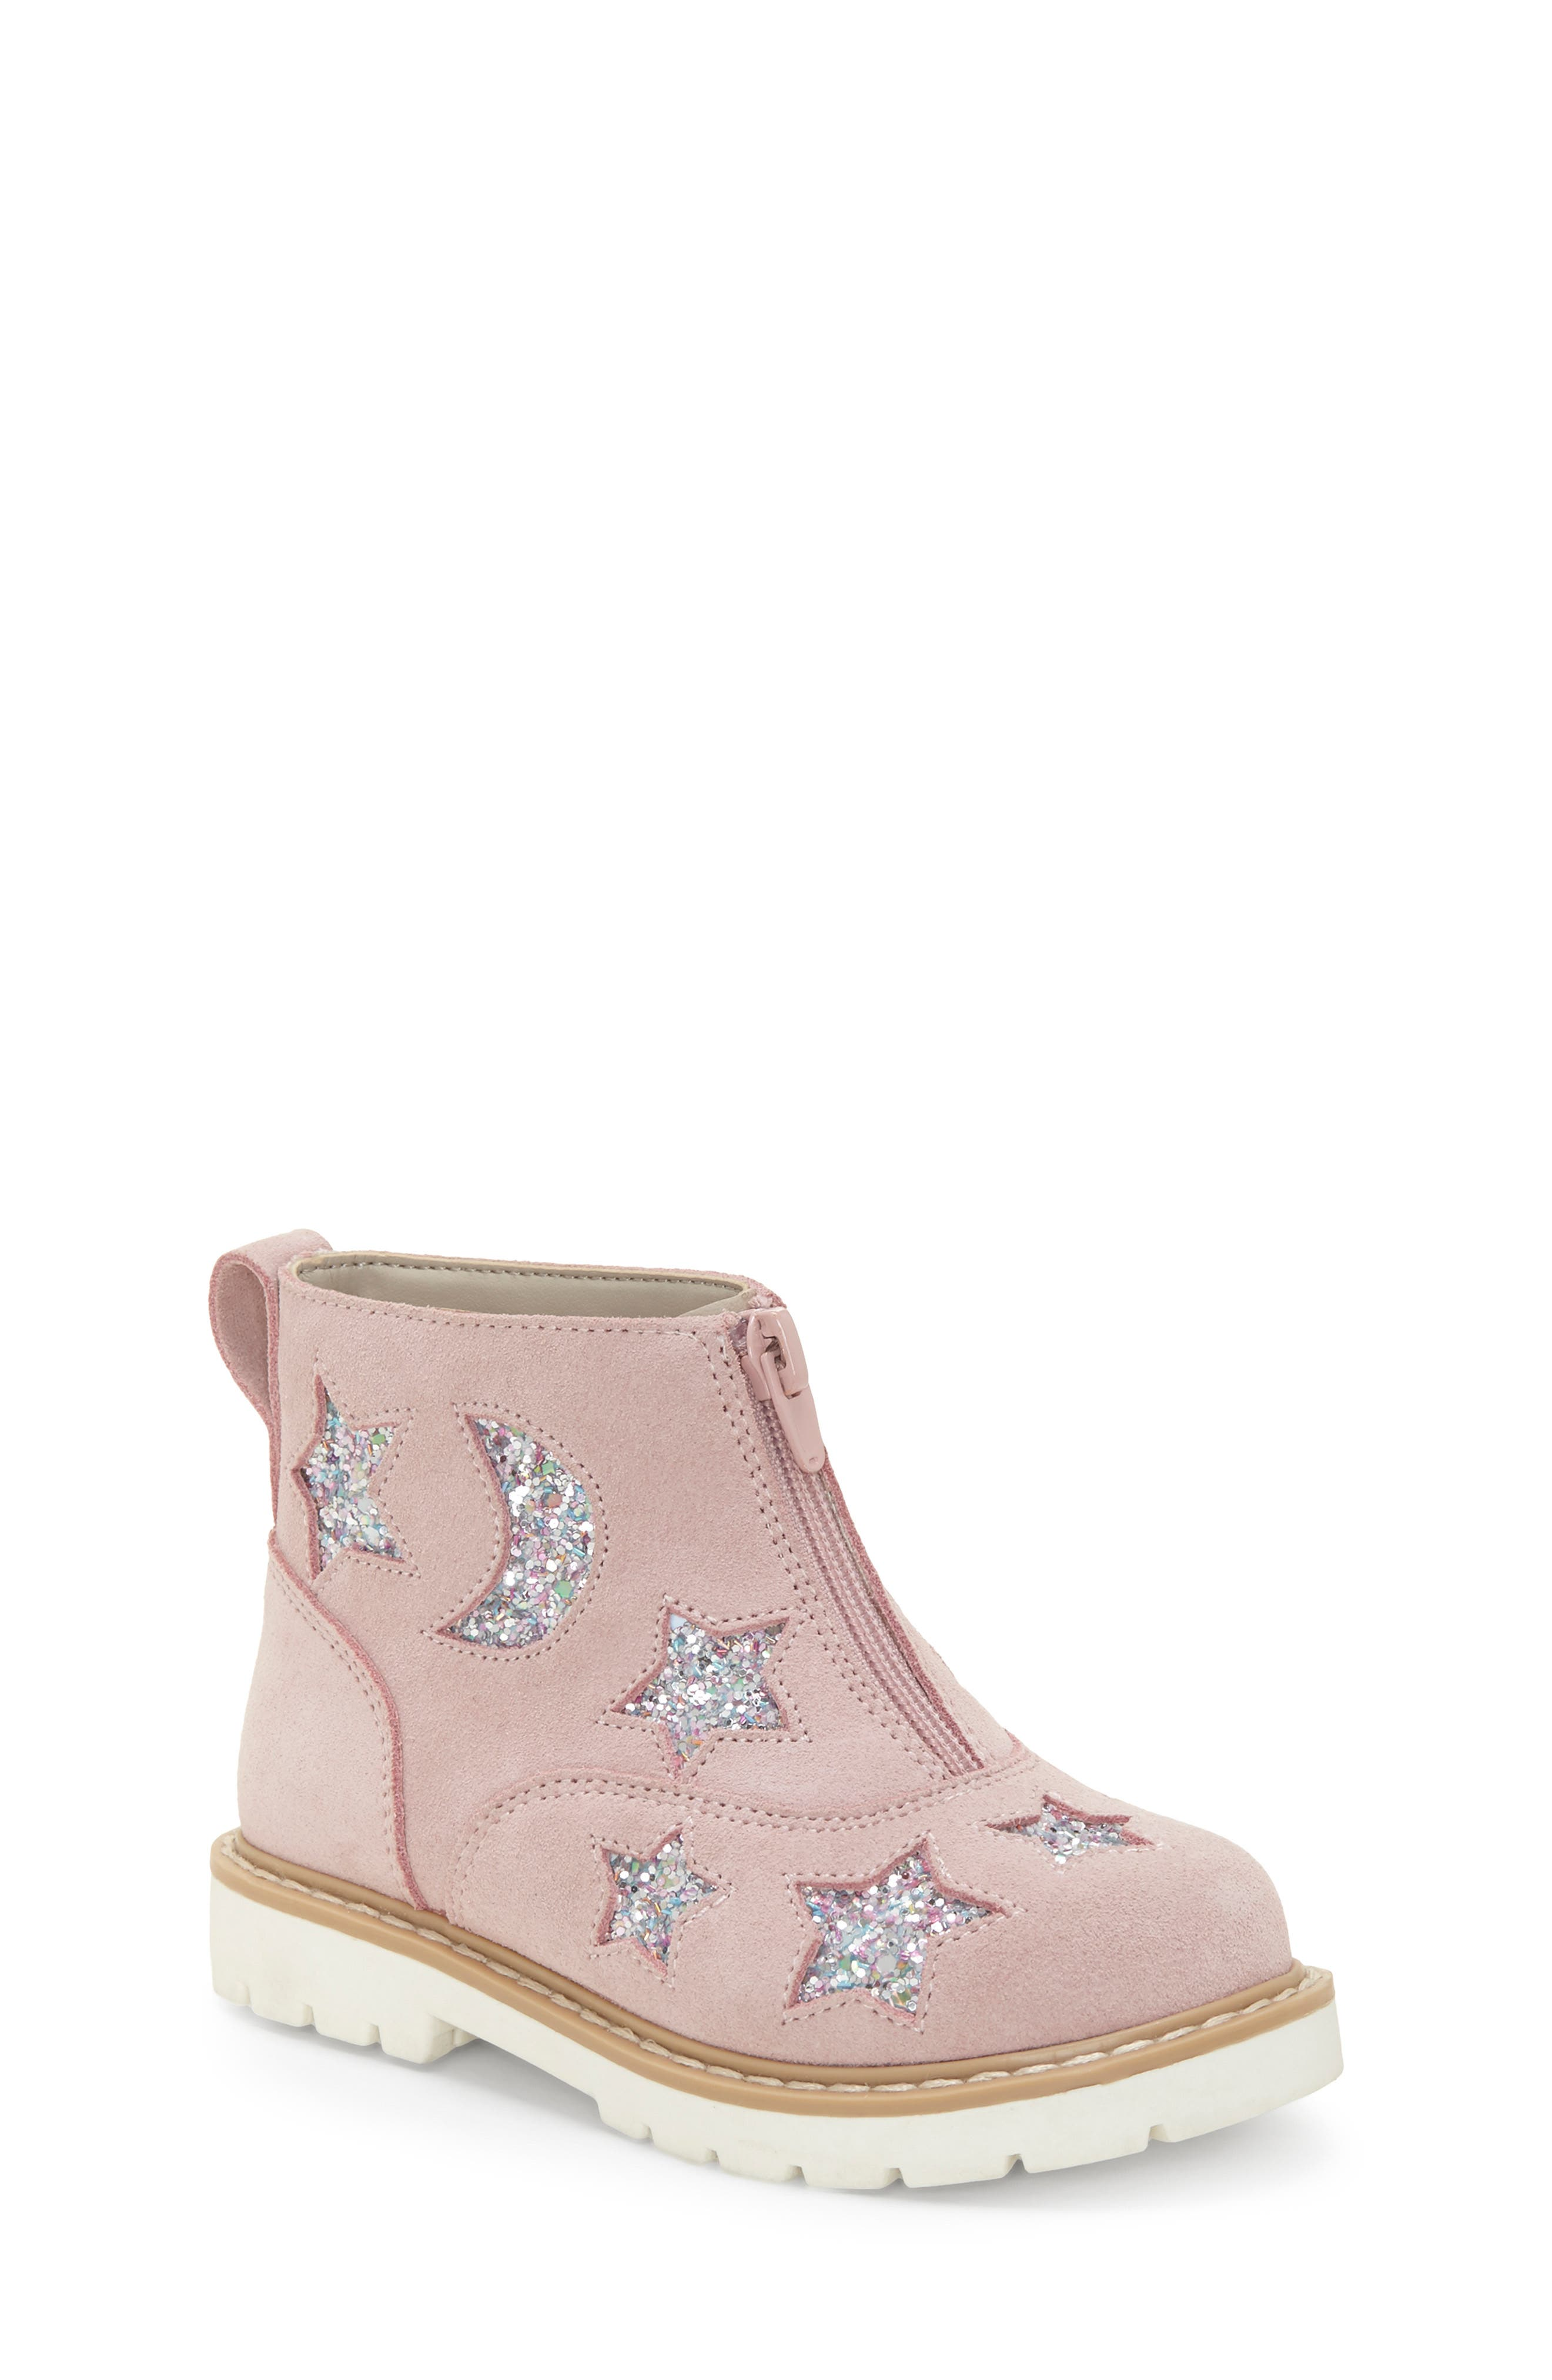 Aisha Glittery Front Zip Bootie, Main, color, FAIRY PINK/ SILVER